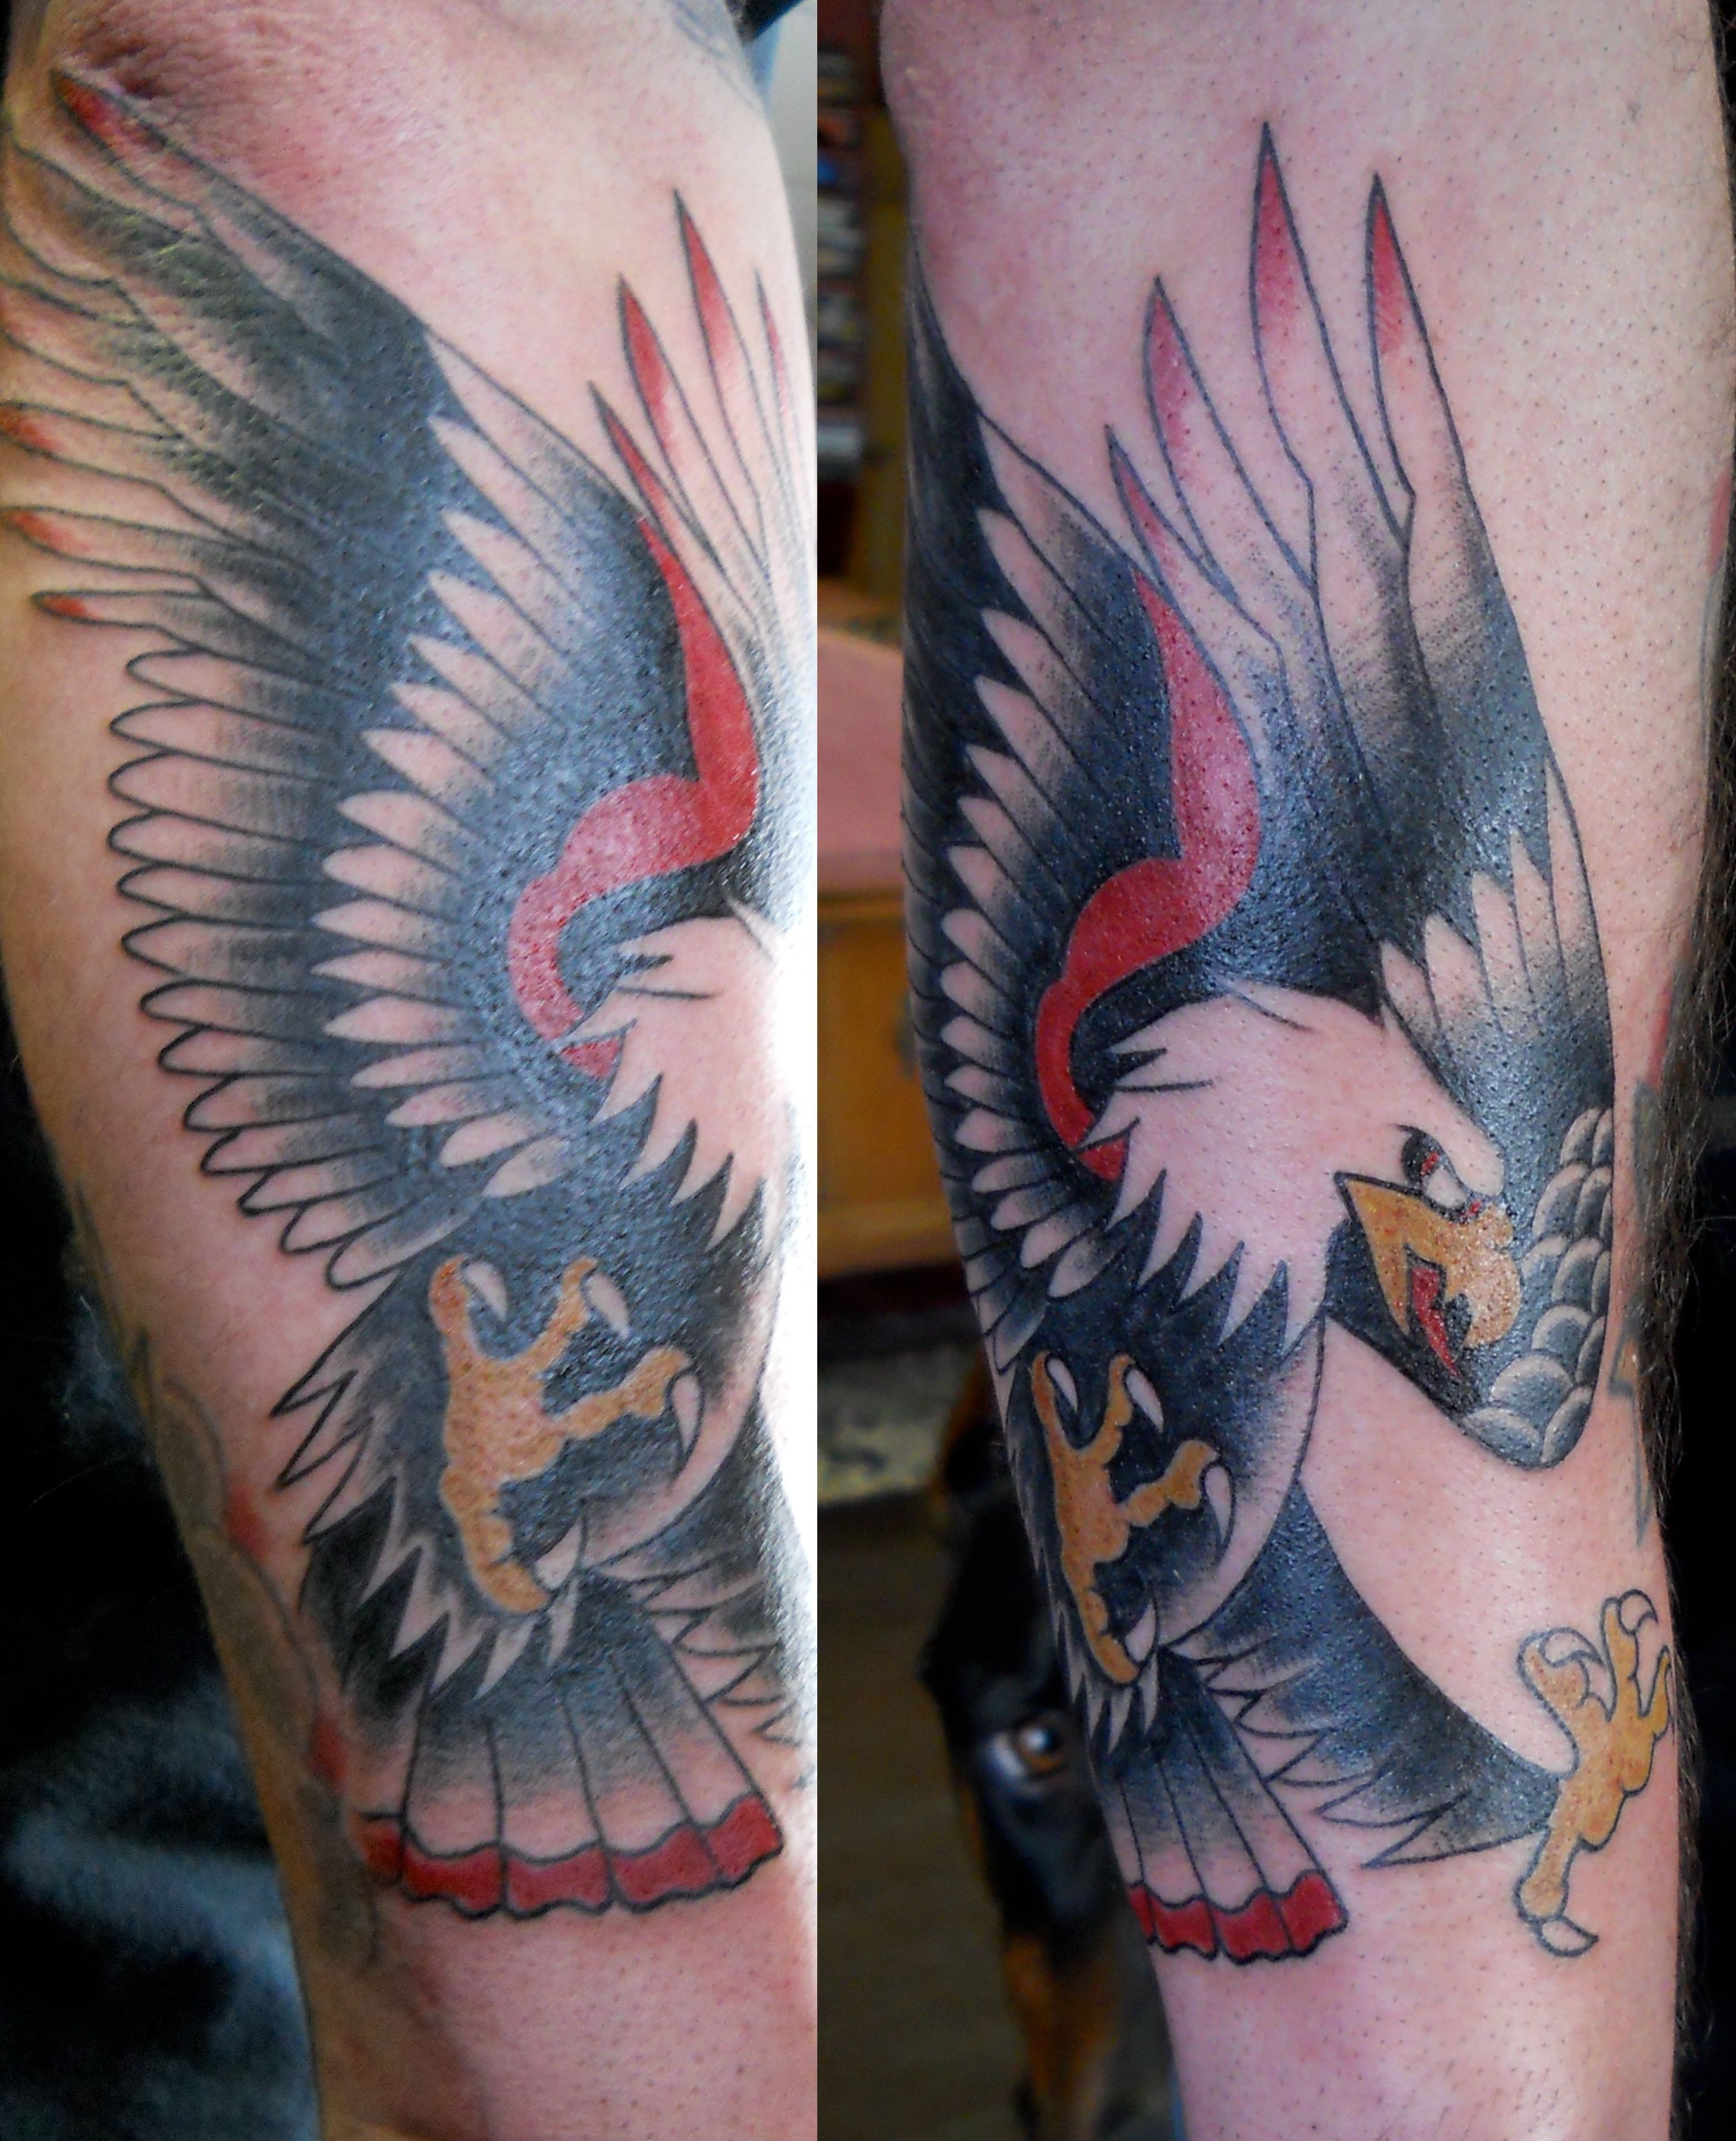 American eagle tattoos high quality photos and flash - Traditional Eagle Tattoo Eagle Tattoo By Lila Rees